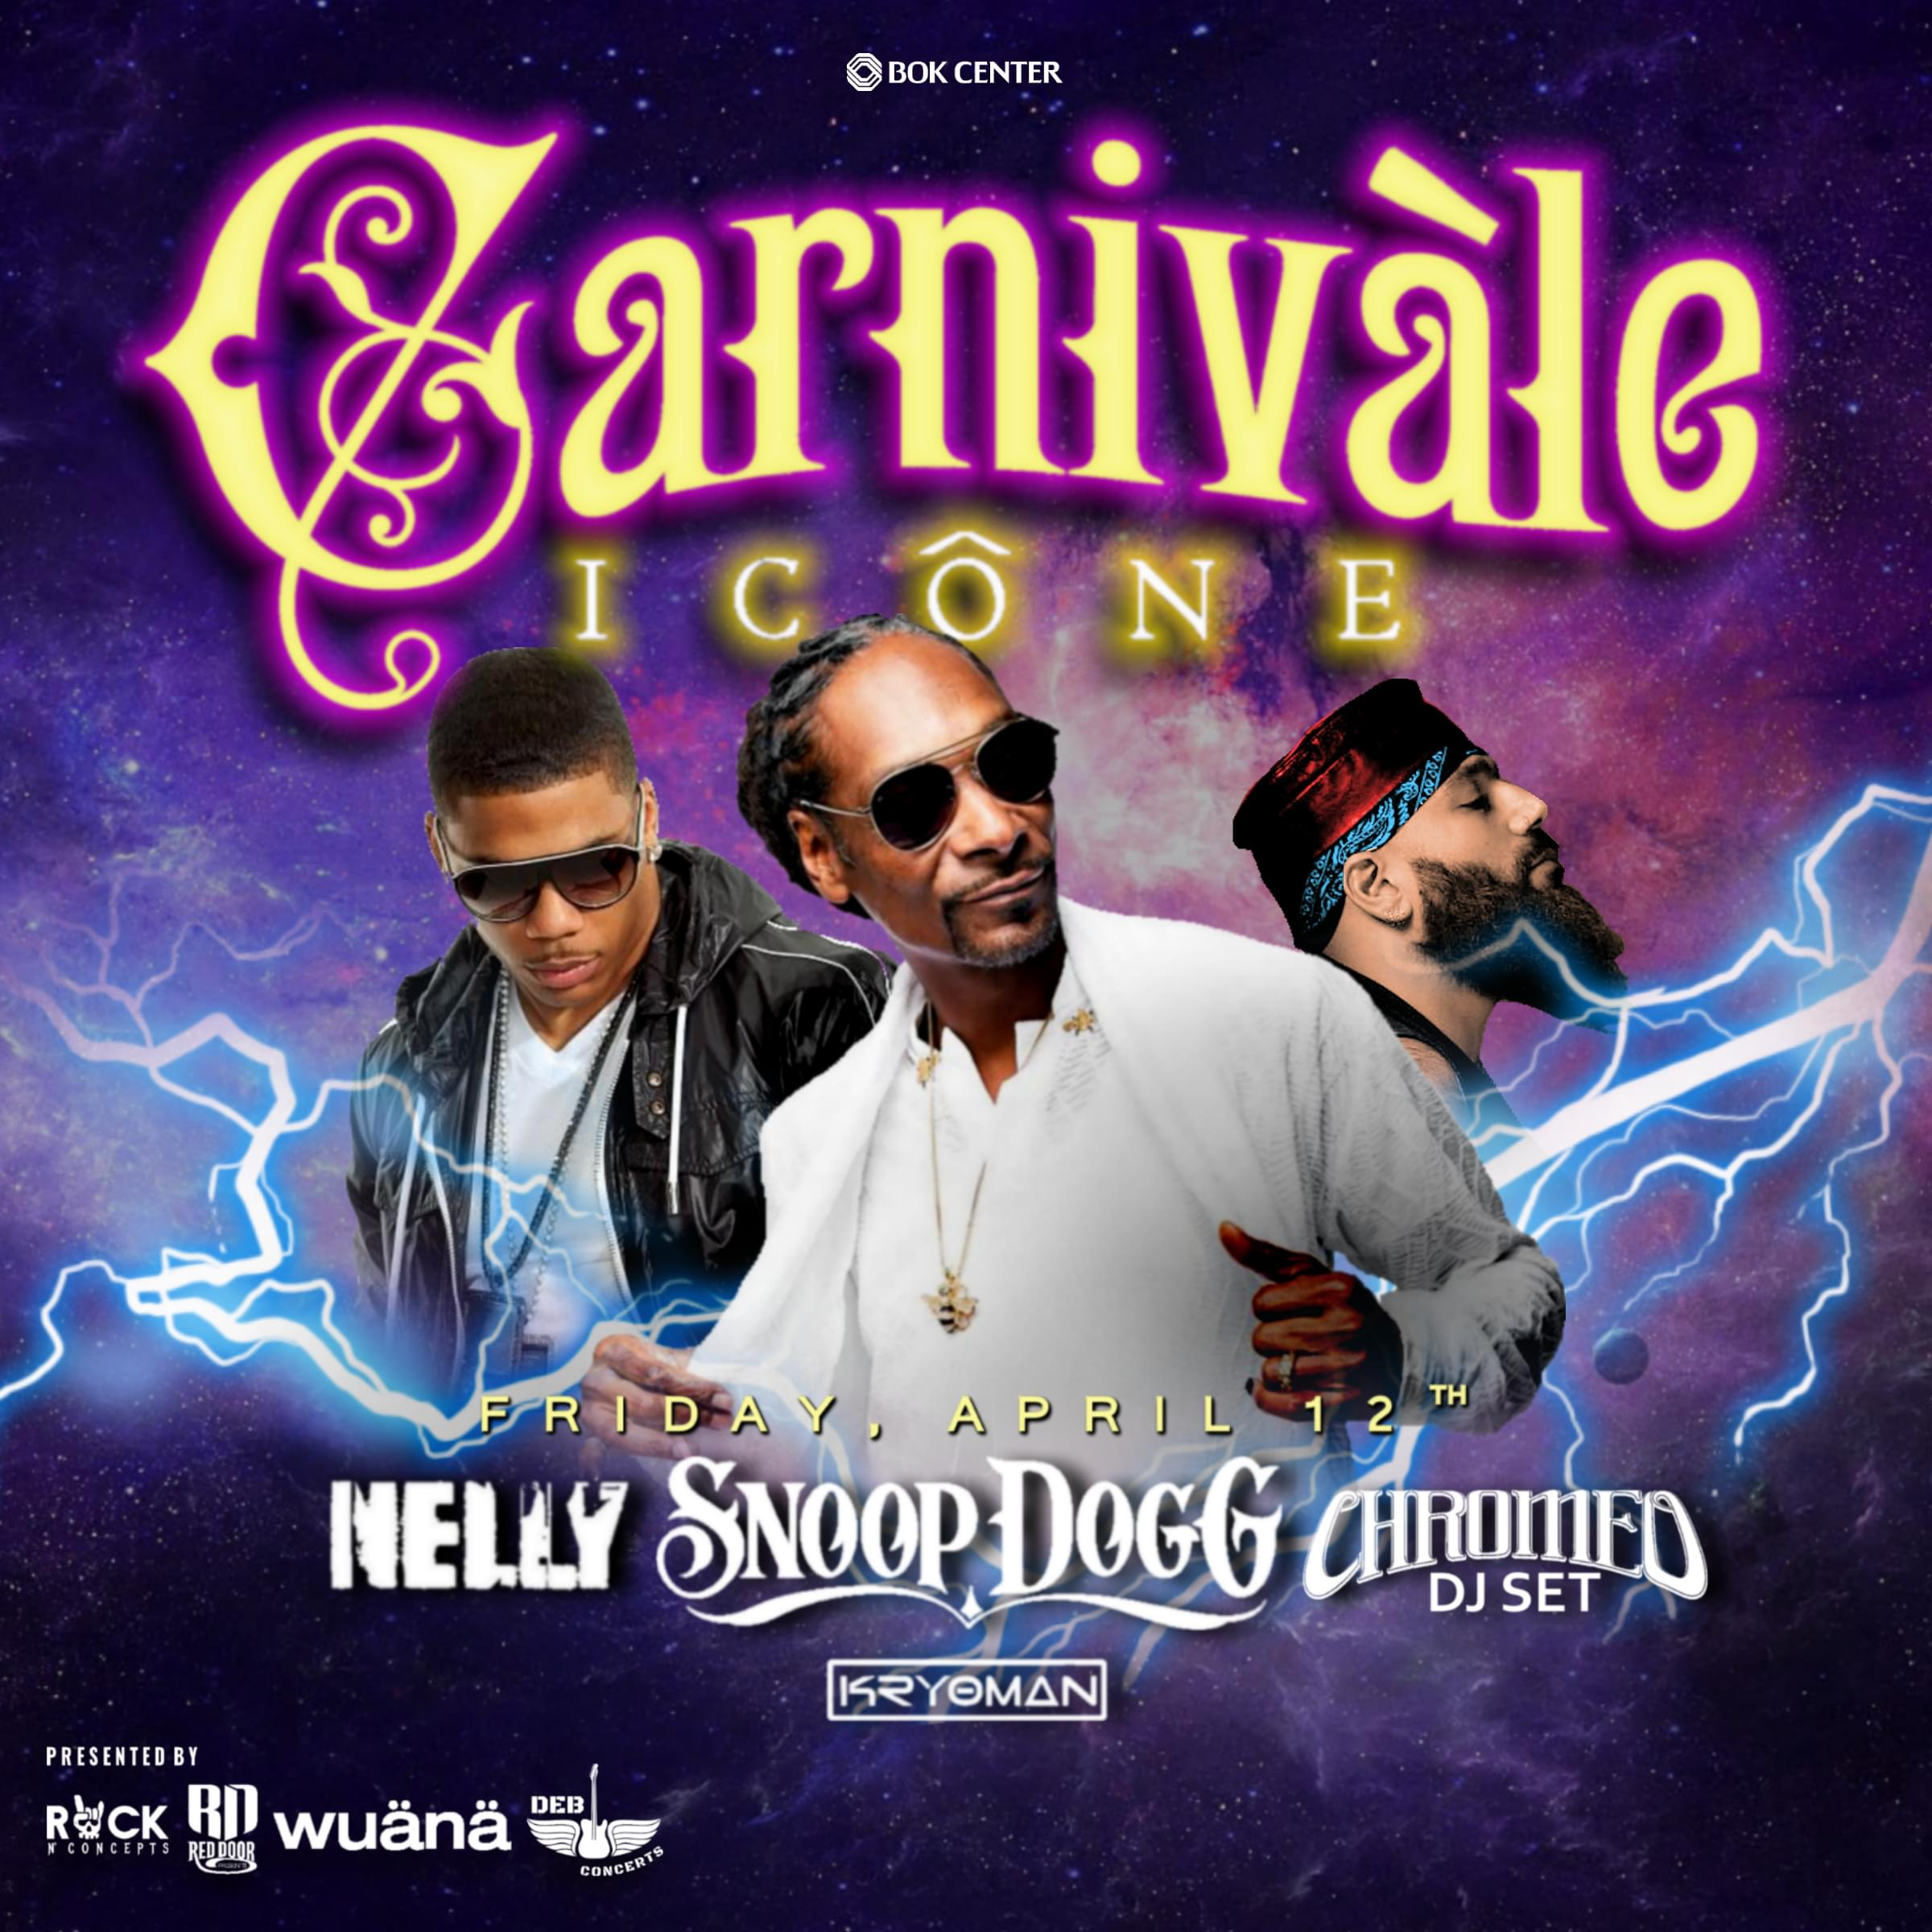 SNOOP DOGG/NELLY LIVE AT THE BOK CENTER 4/12!!!